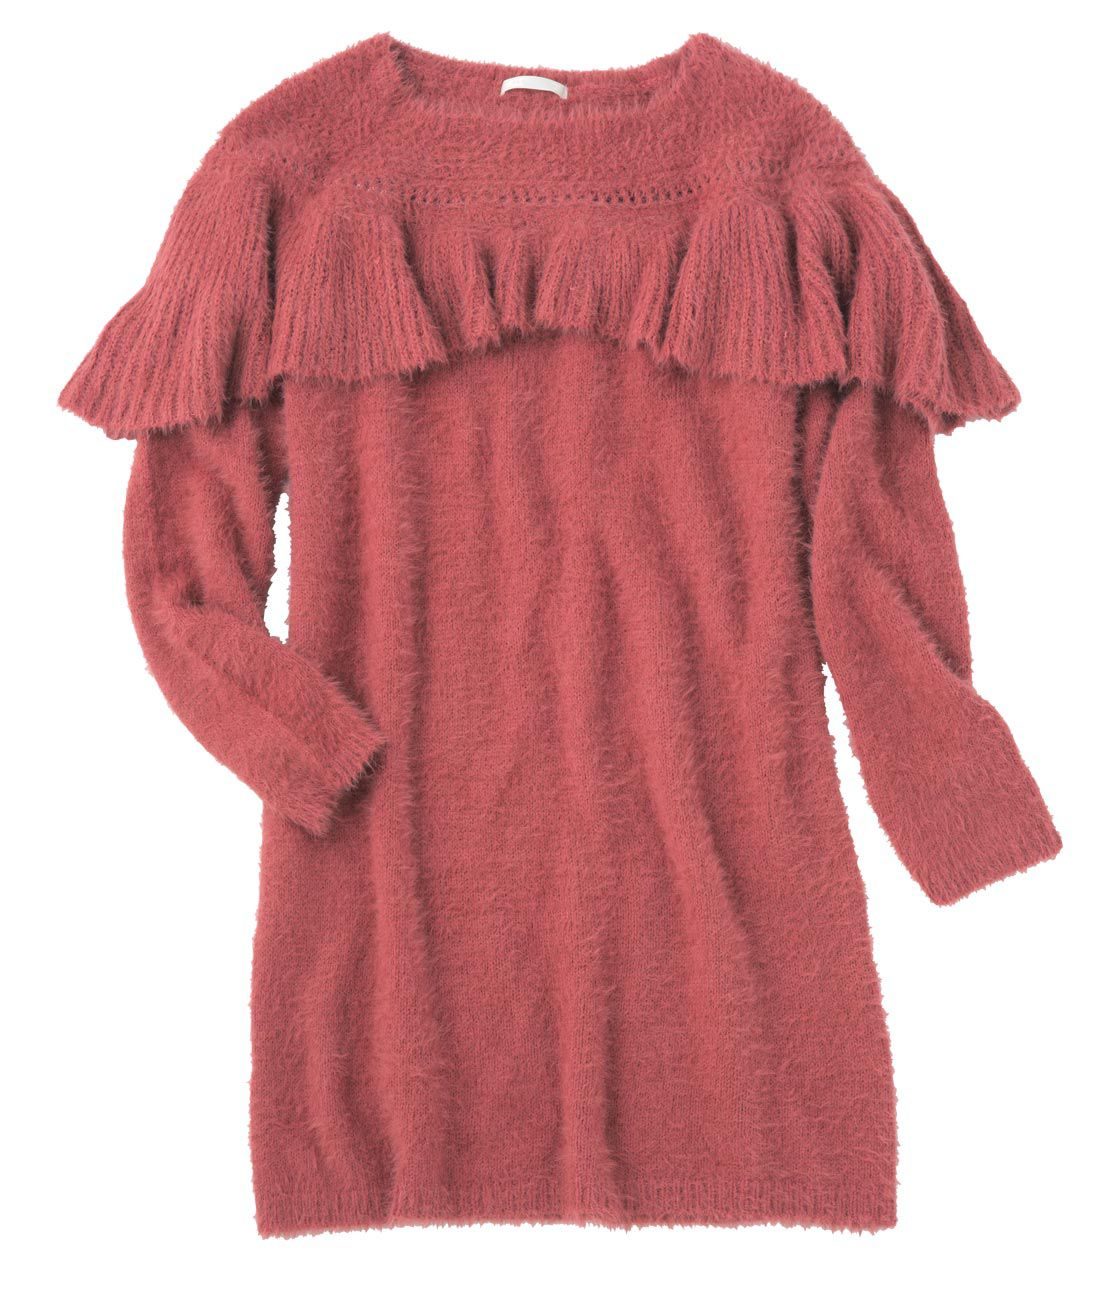 Leh Consequences neck ruffle knit dress